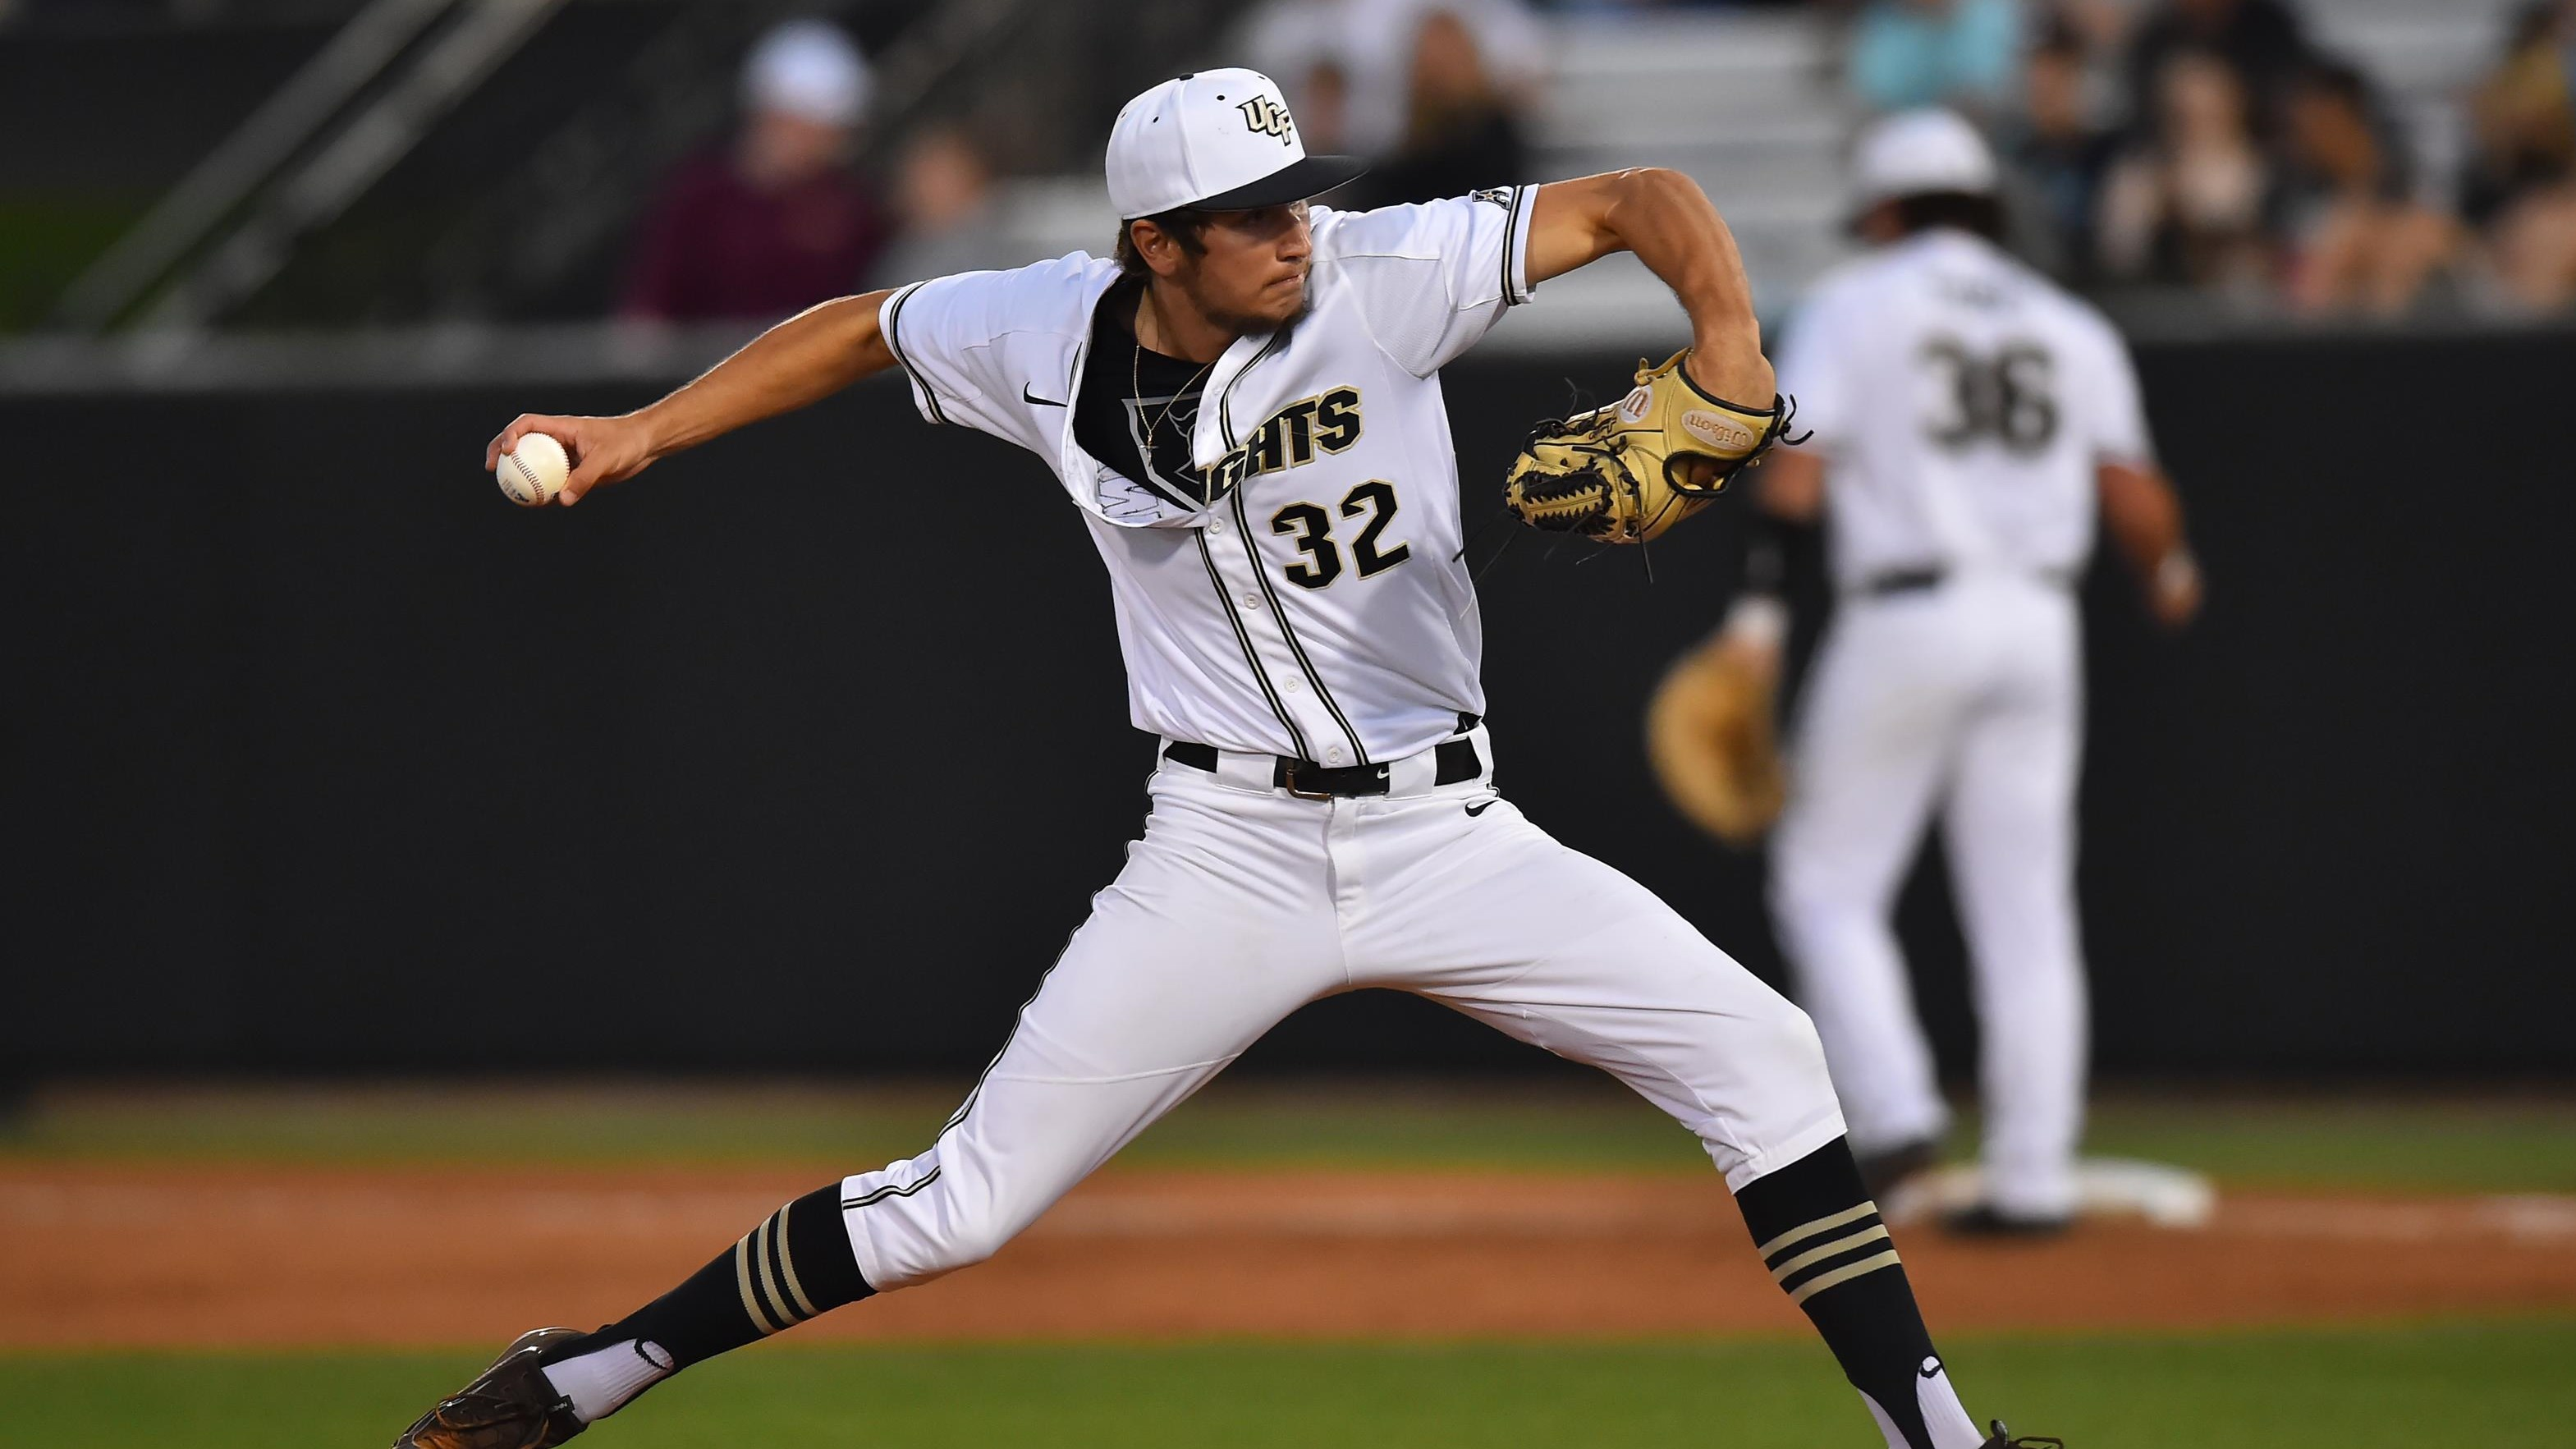 PREVIEW The Veteran Pitchers UCFKnights